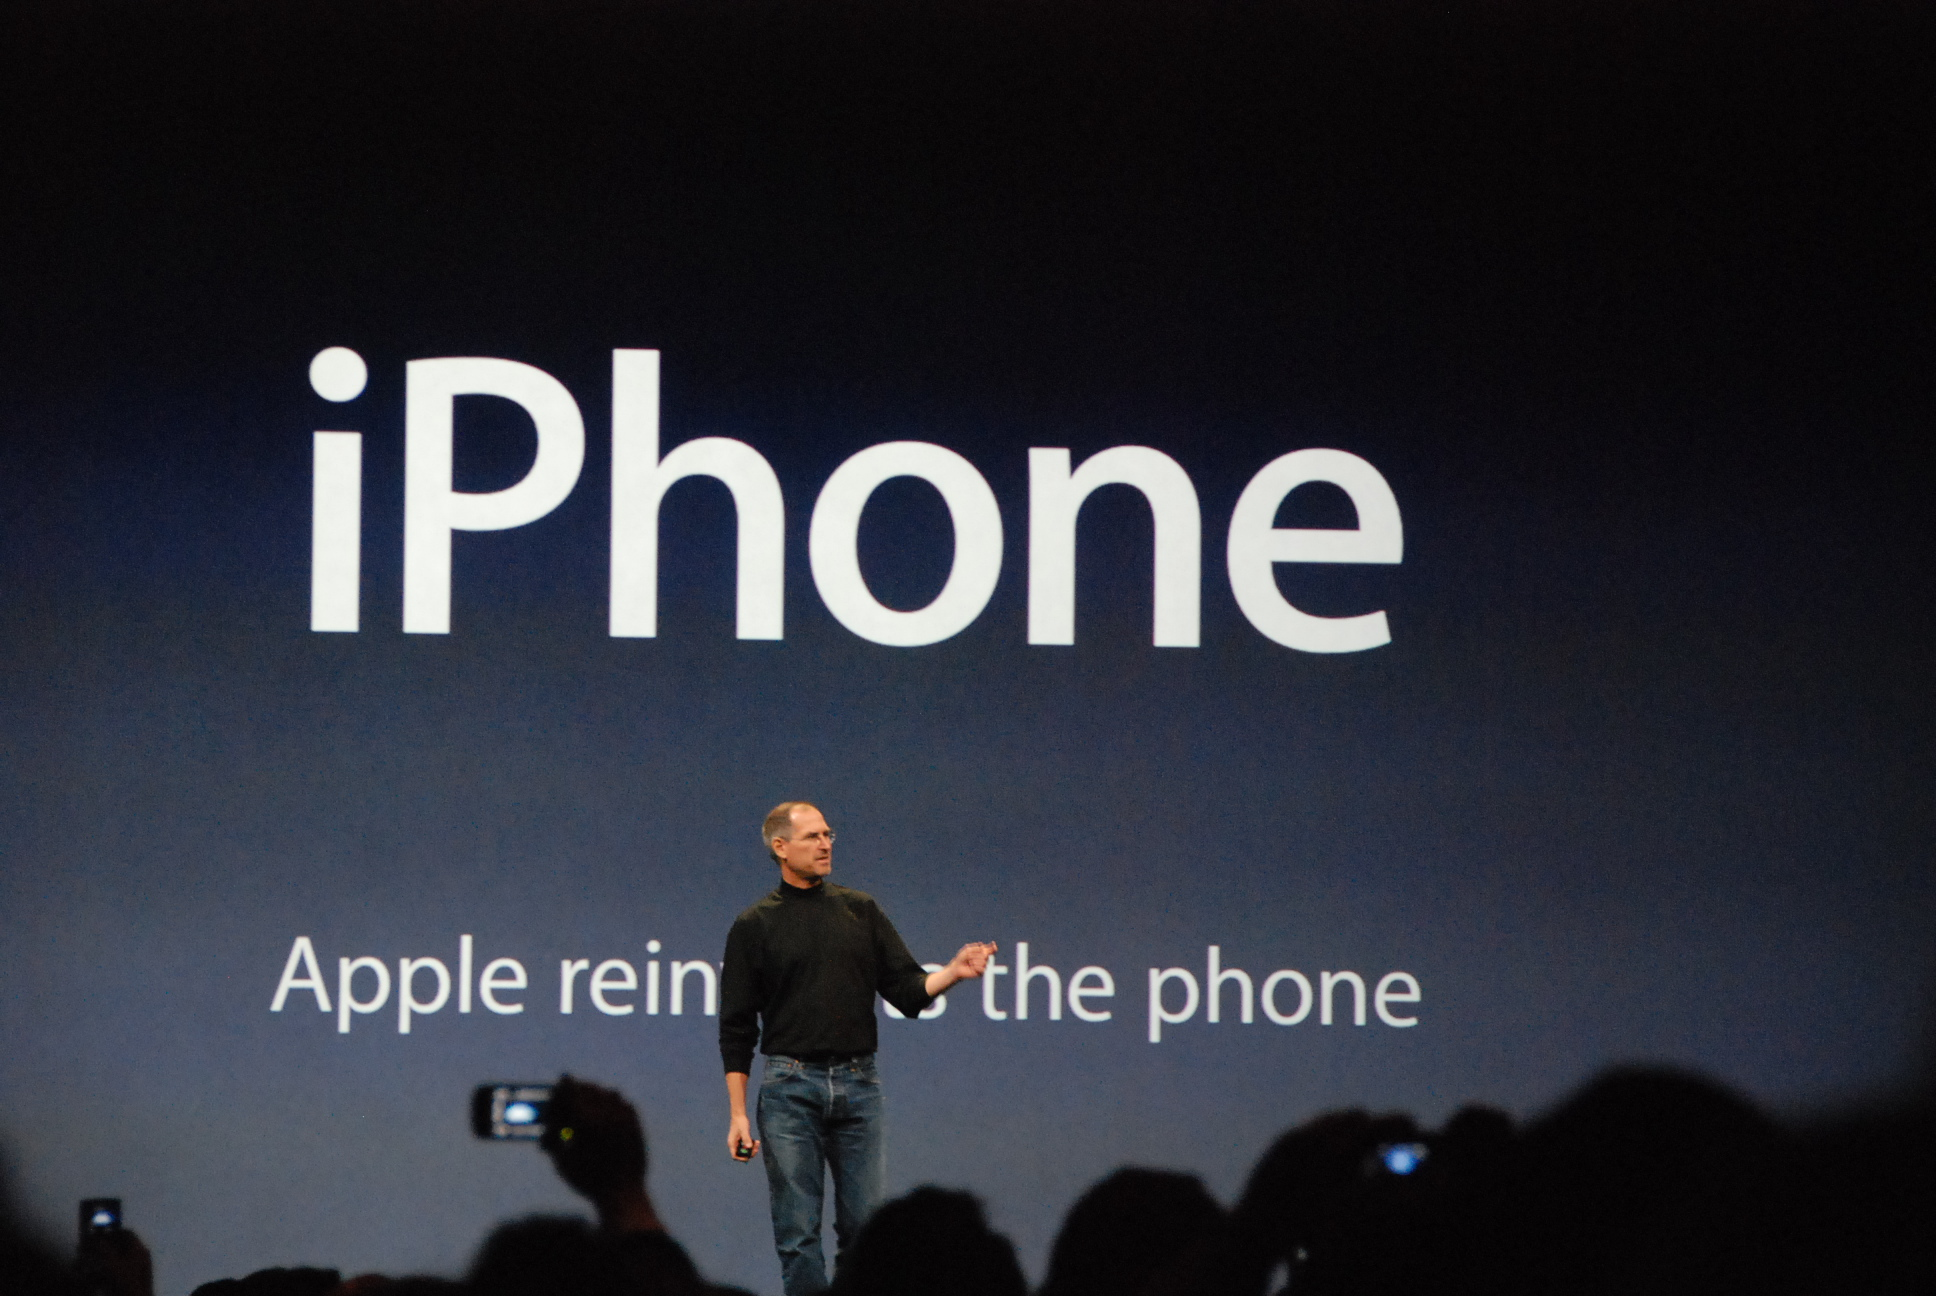 AT&T Confirms iPhone 5 Delay, Or Did They?